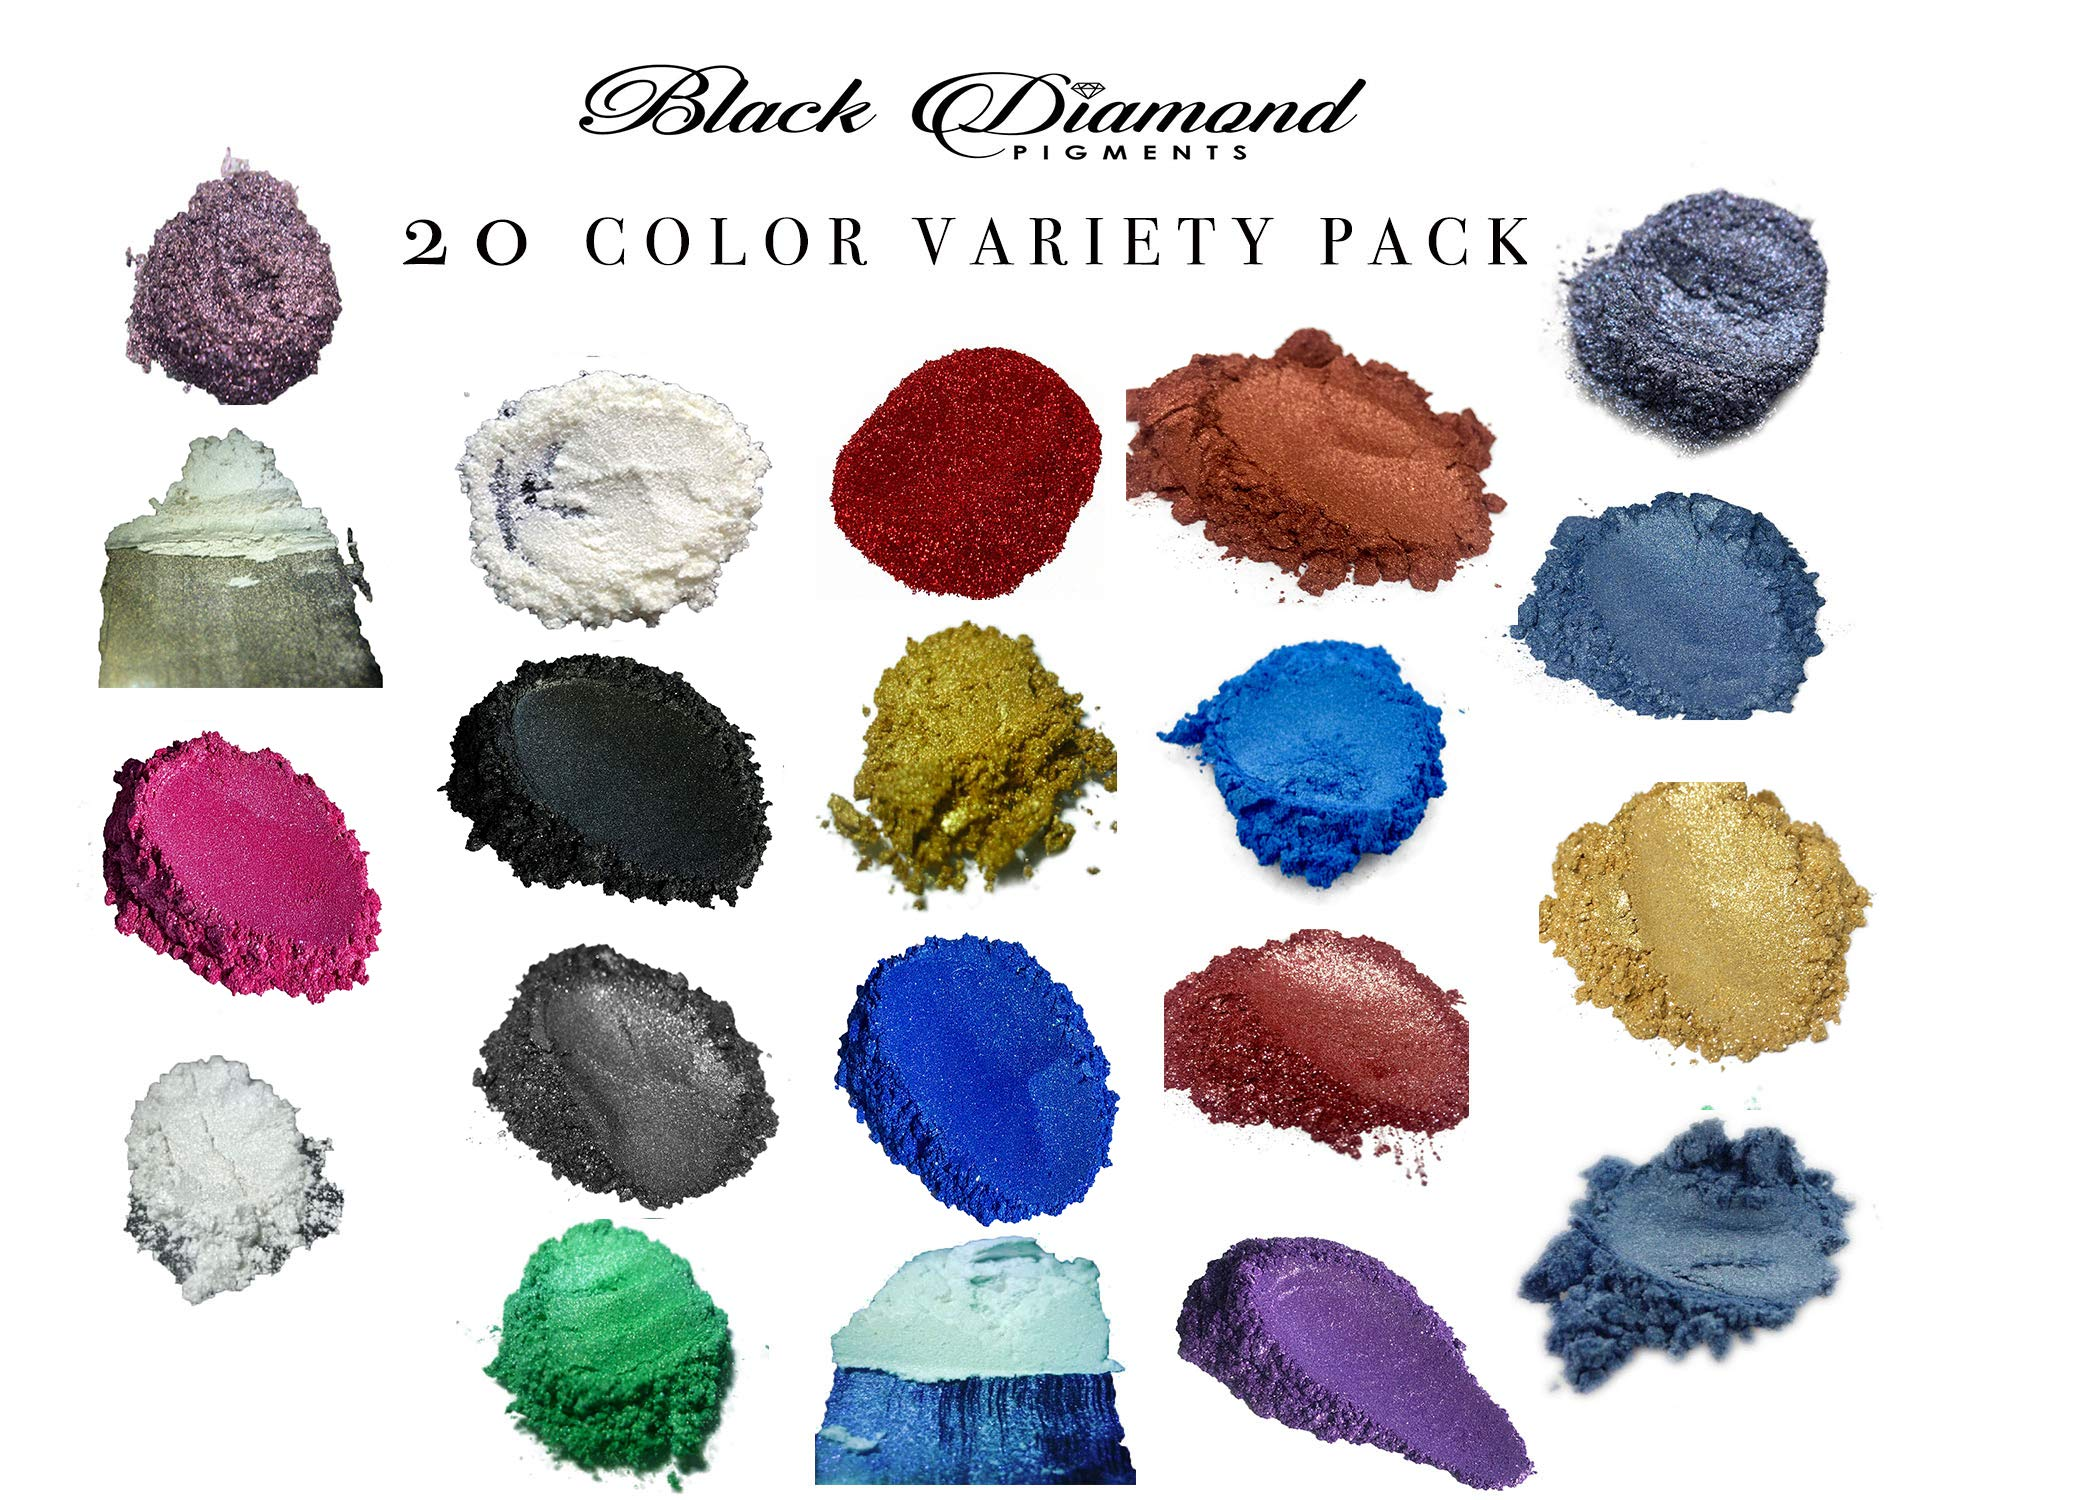 20 Color Variety Pack Mica Powder Pure, 2TONE Series Variety Pigment Packs (Epoxy,Paint,Color,Art) Black Diamond Pigments by BLACK DIAMOND PIGMENTS